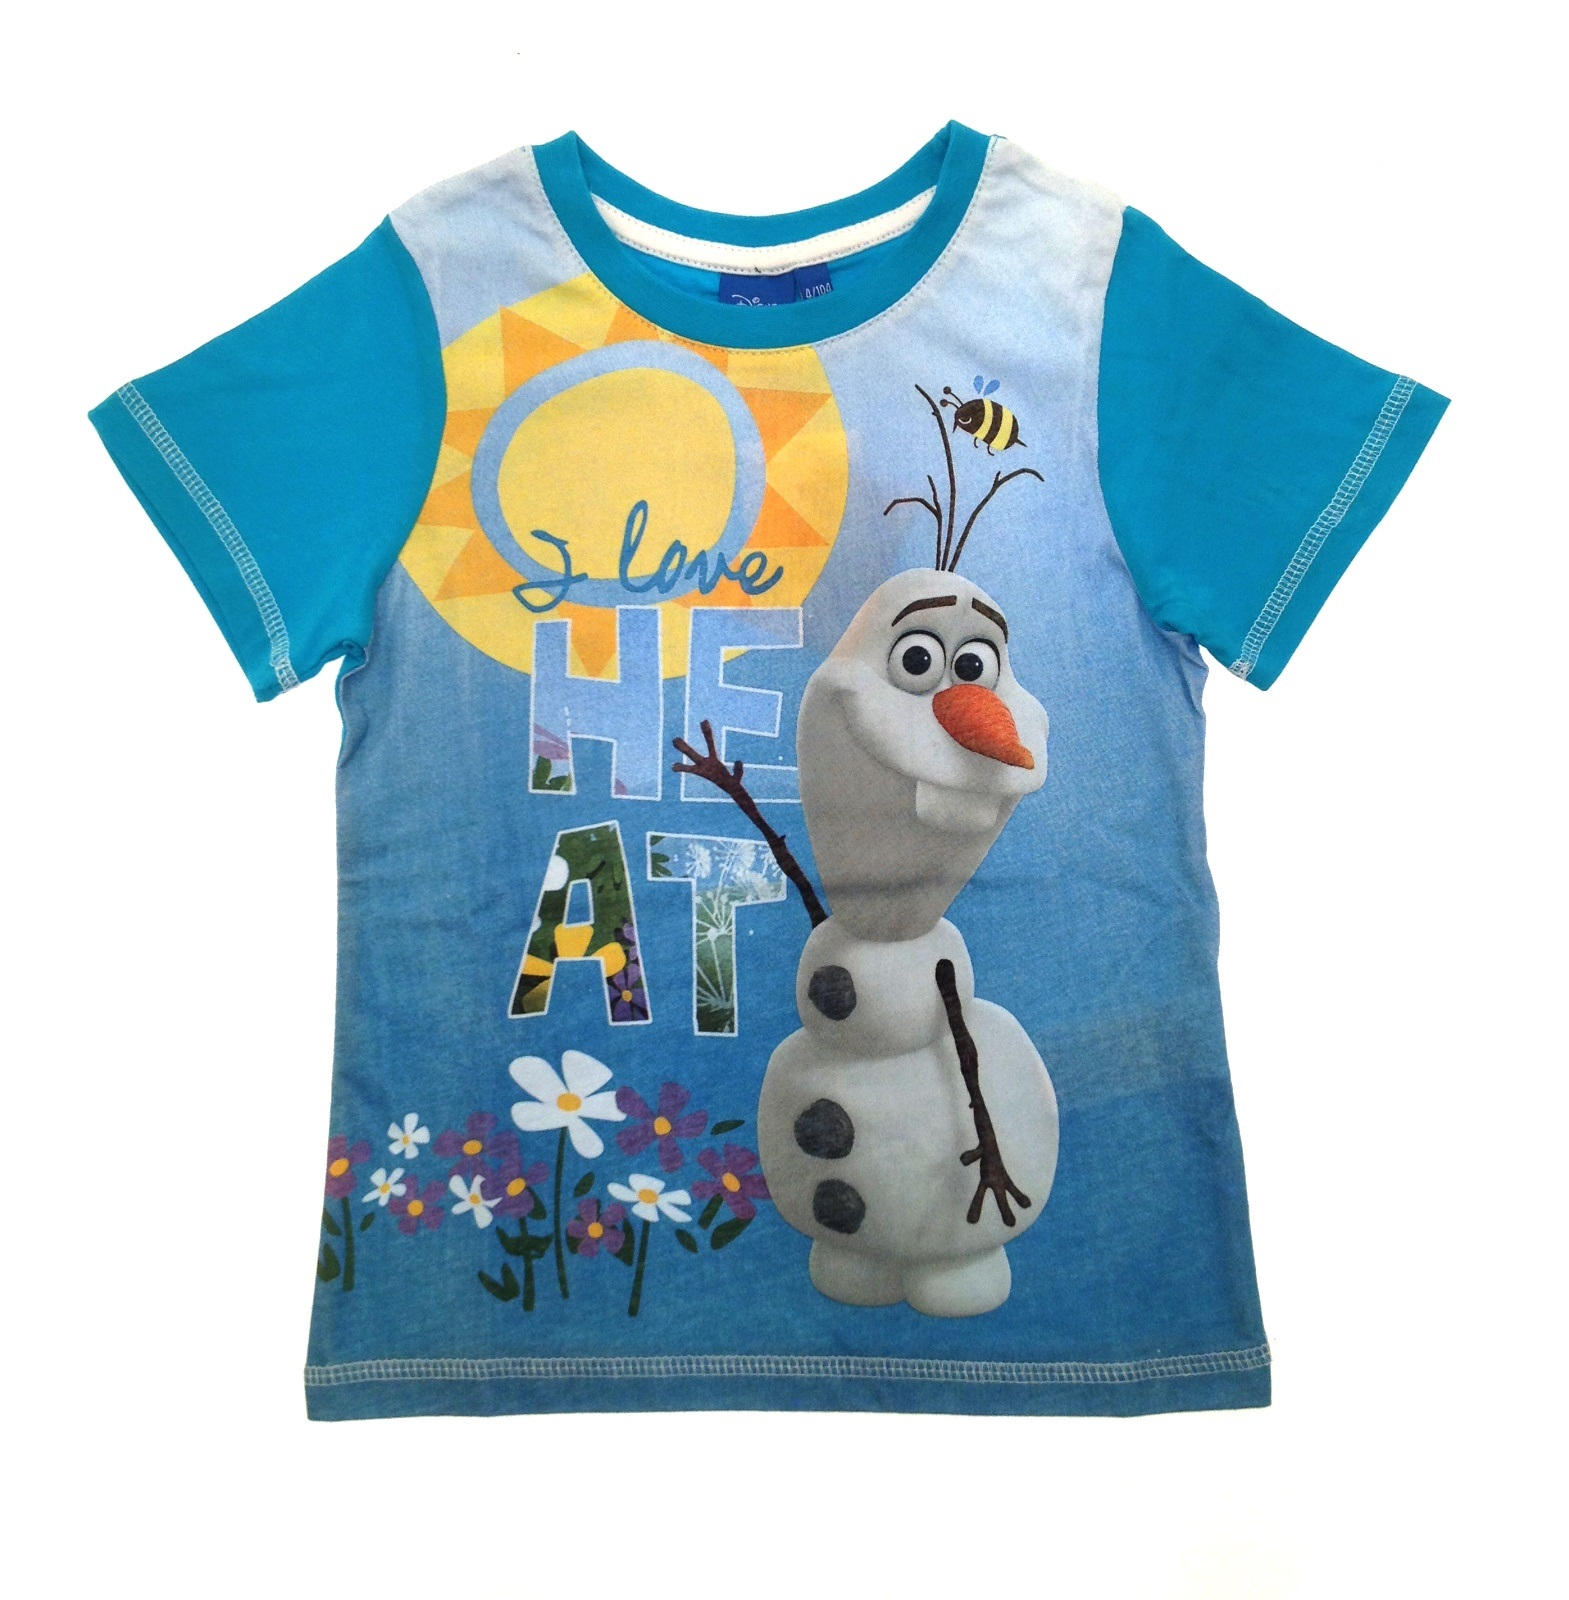 Frozen Shirts Disney hit it big with the release of the 3D computer-animated musical fantasy-comedy film, Frozen. Children and adults alike can't stop singing the catchy songs like